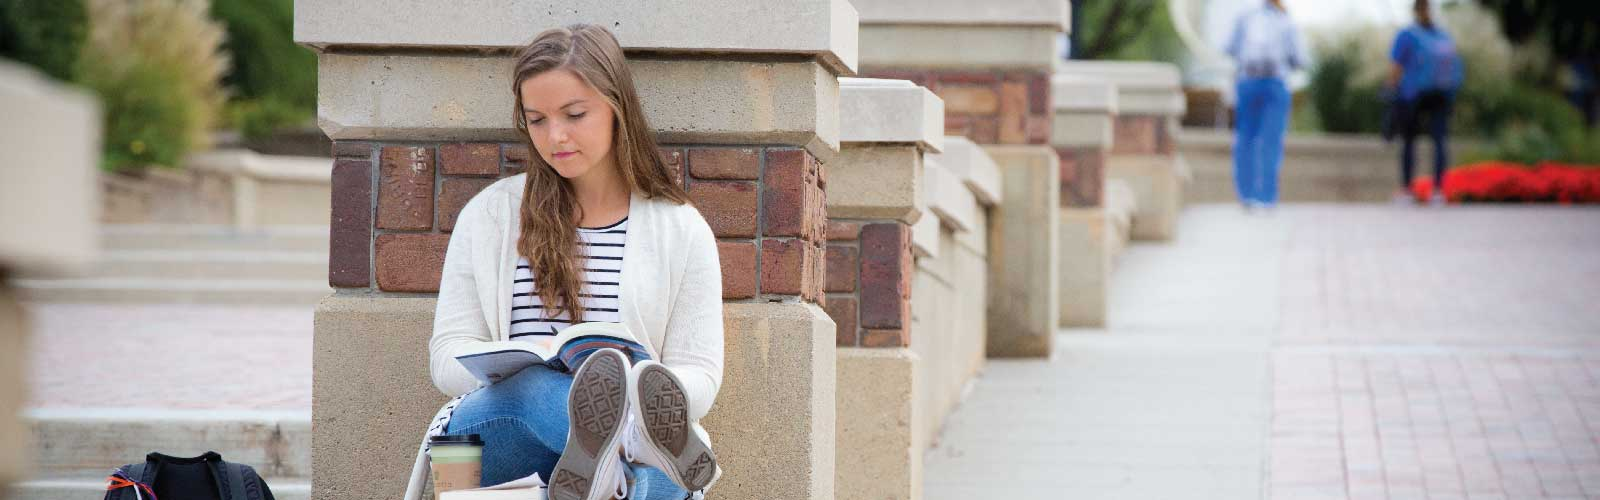 Creighton student reading a book on campus